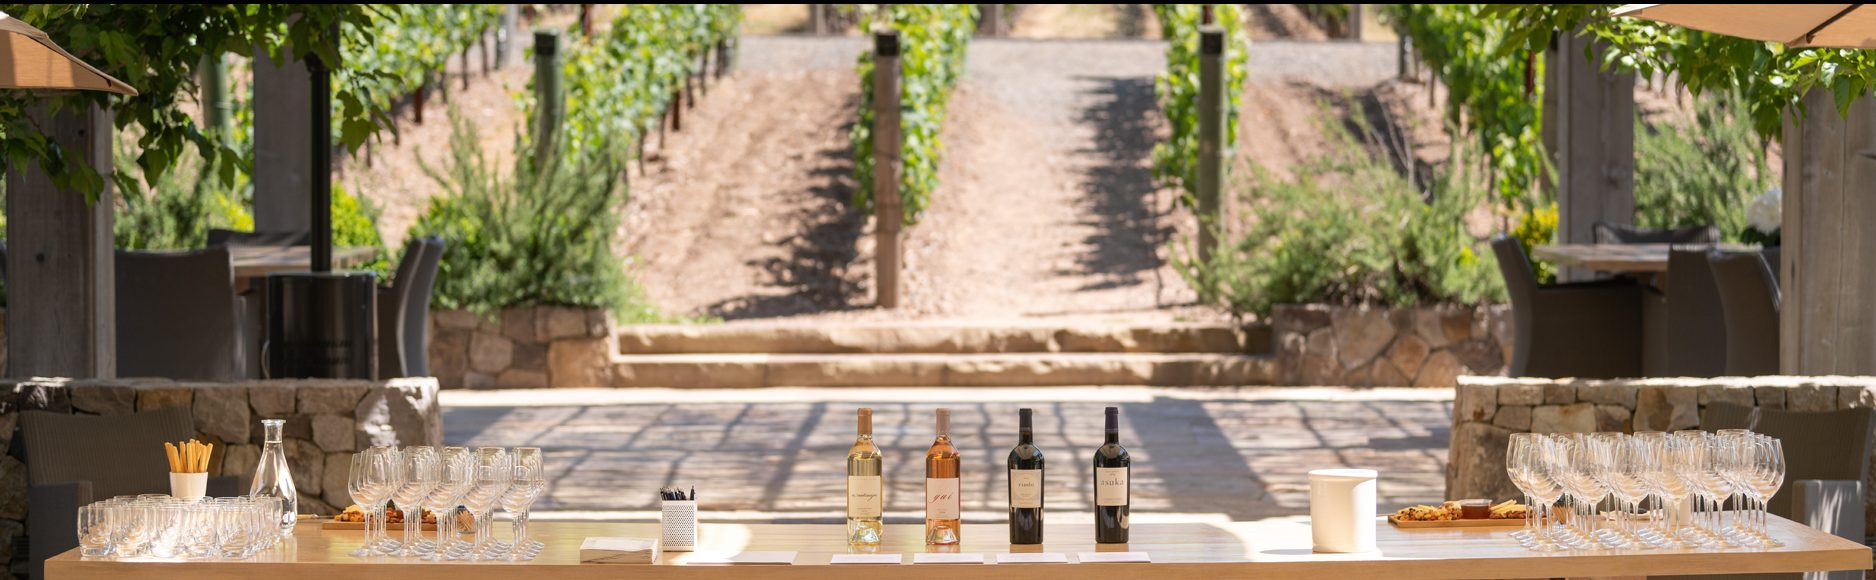 A long wood table set with wine glasses and four bottles of wine, set outside next to rows of grape vines at Kenzo Estate